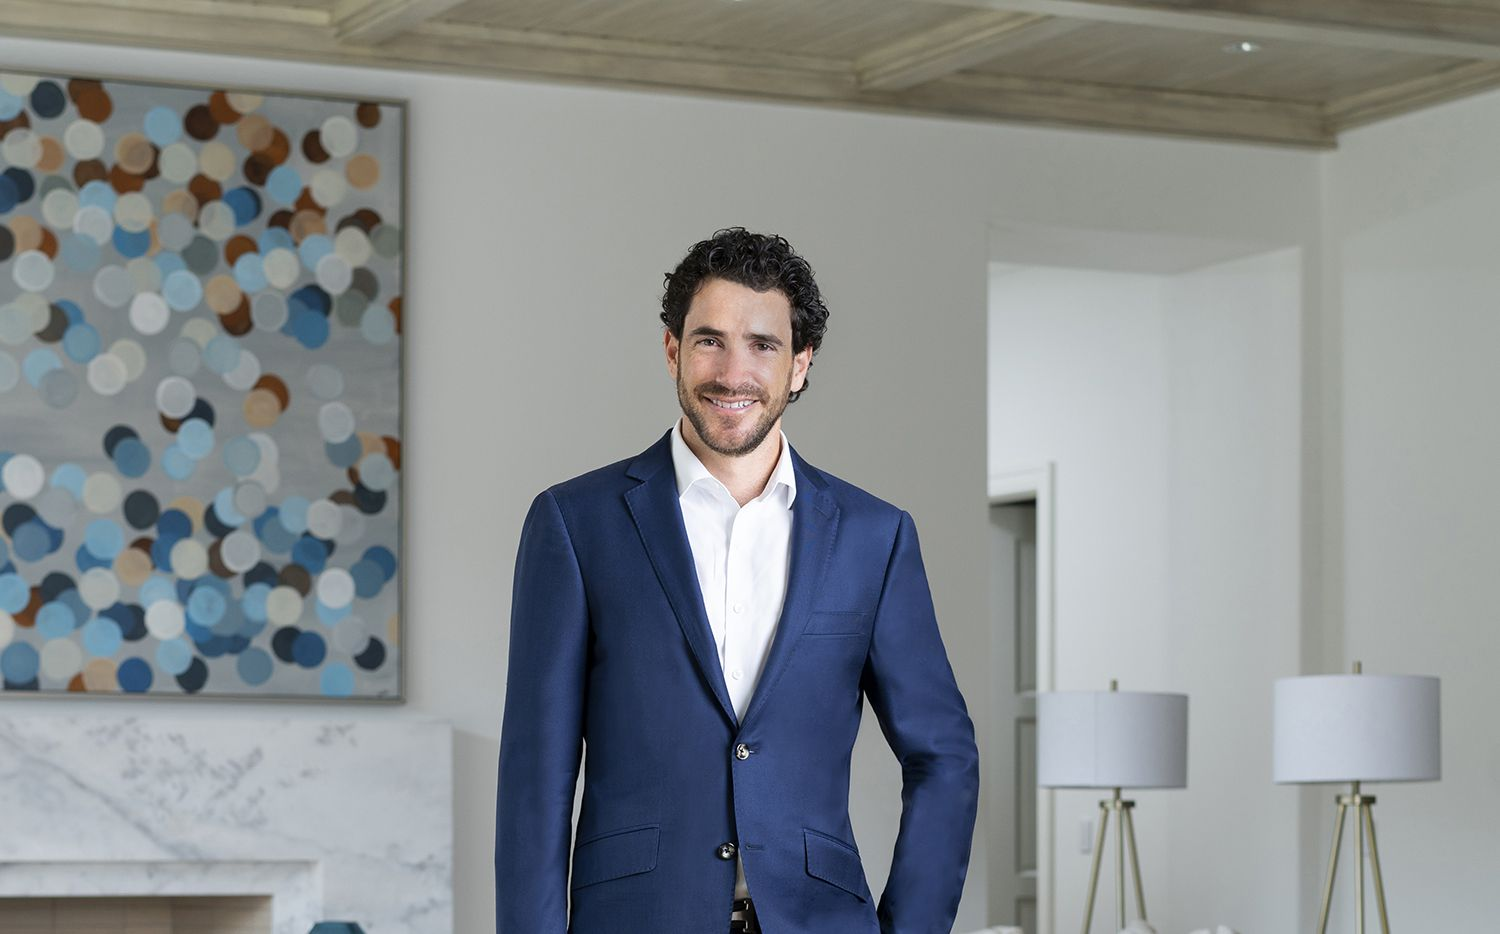 Year-to-date, Alex Perry has already sold $220 million, which represents a significant new trajectory for one of the area's leading agents in a red-hot housing market.